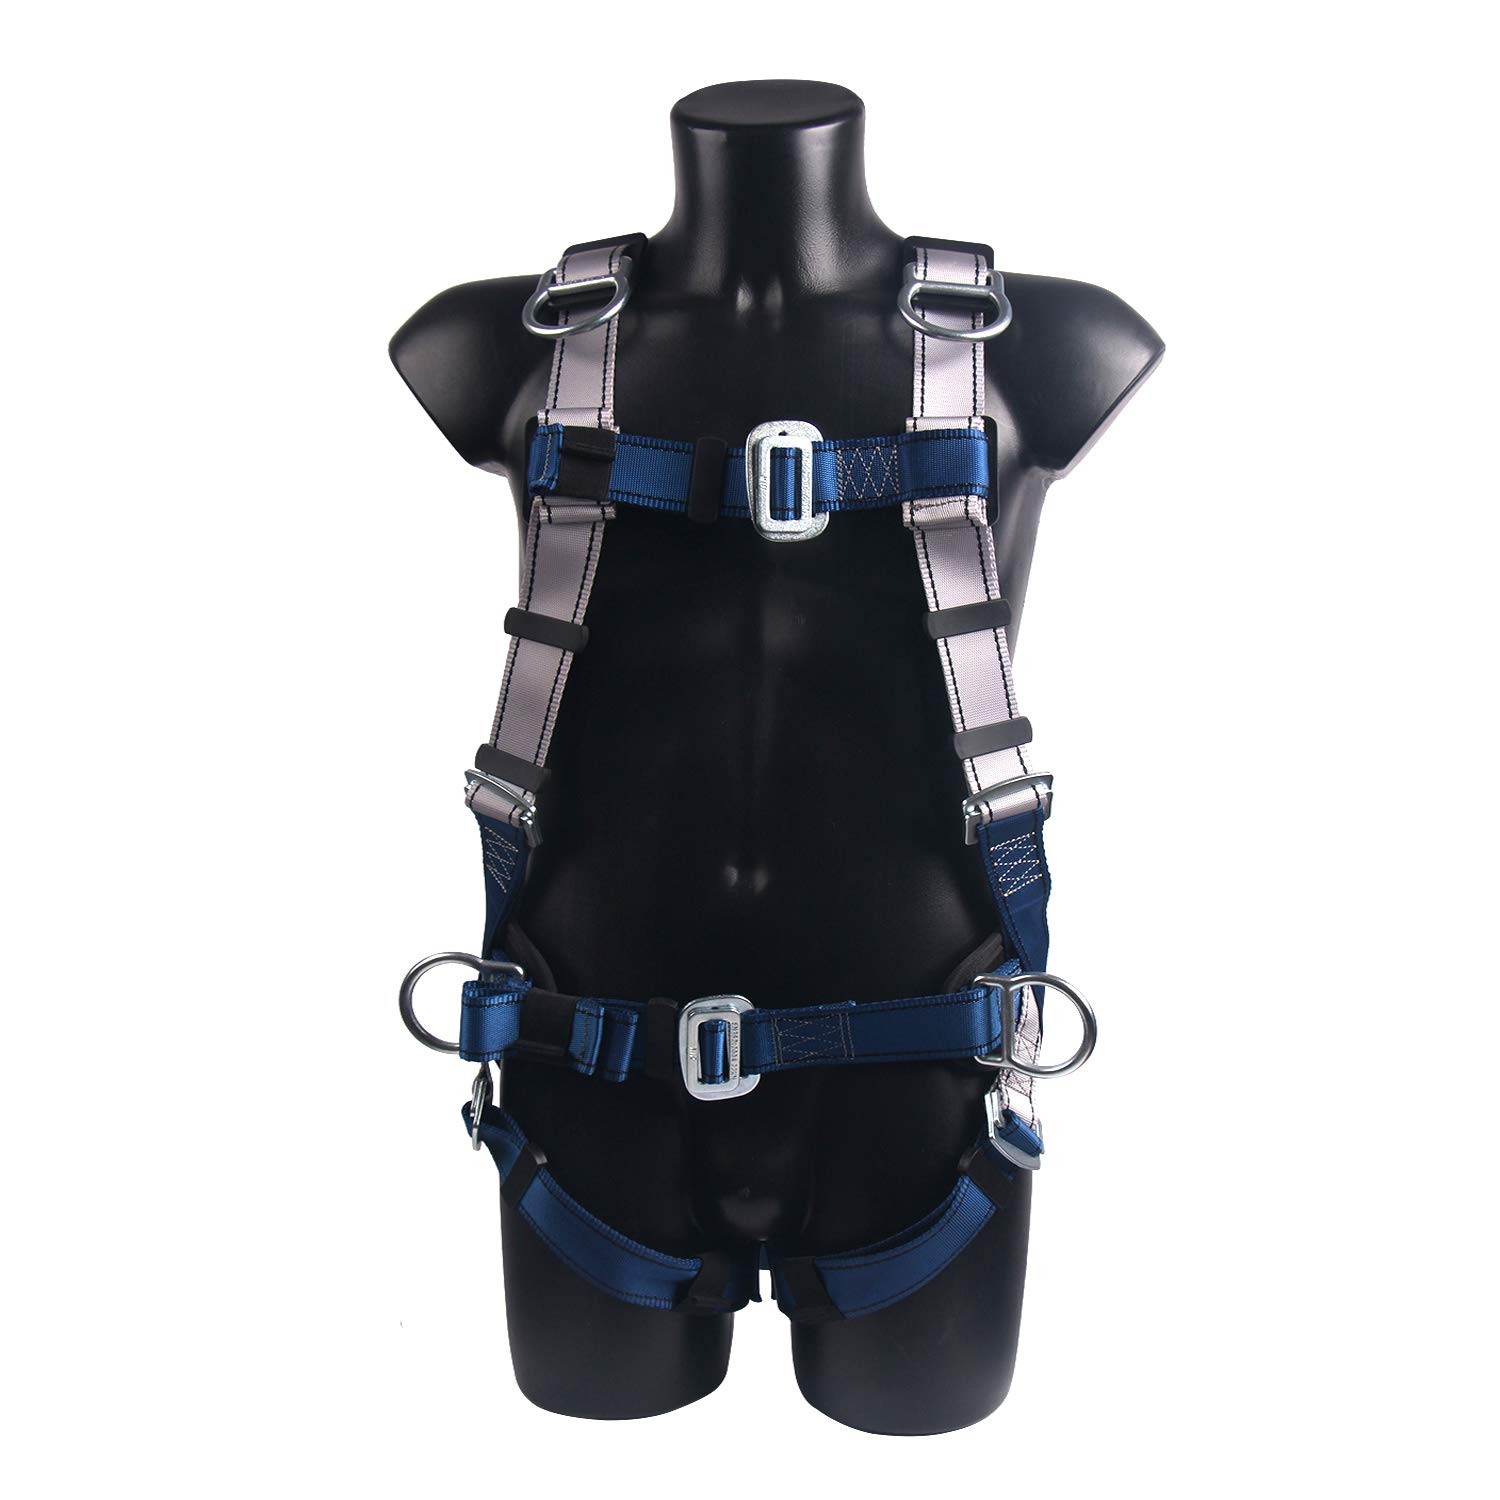 JINGYAT Full Body Safety Harness Fall Protection with 5 D-Ring,Universal Personal Protective Equipment (130-310 pound),Construction Industrial Tower Roofing Tool by JINGYAT (Image #2)